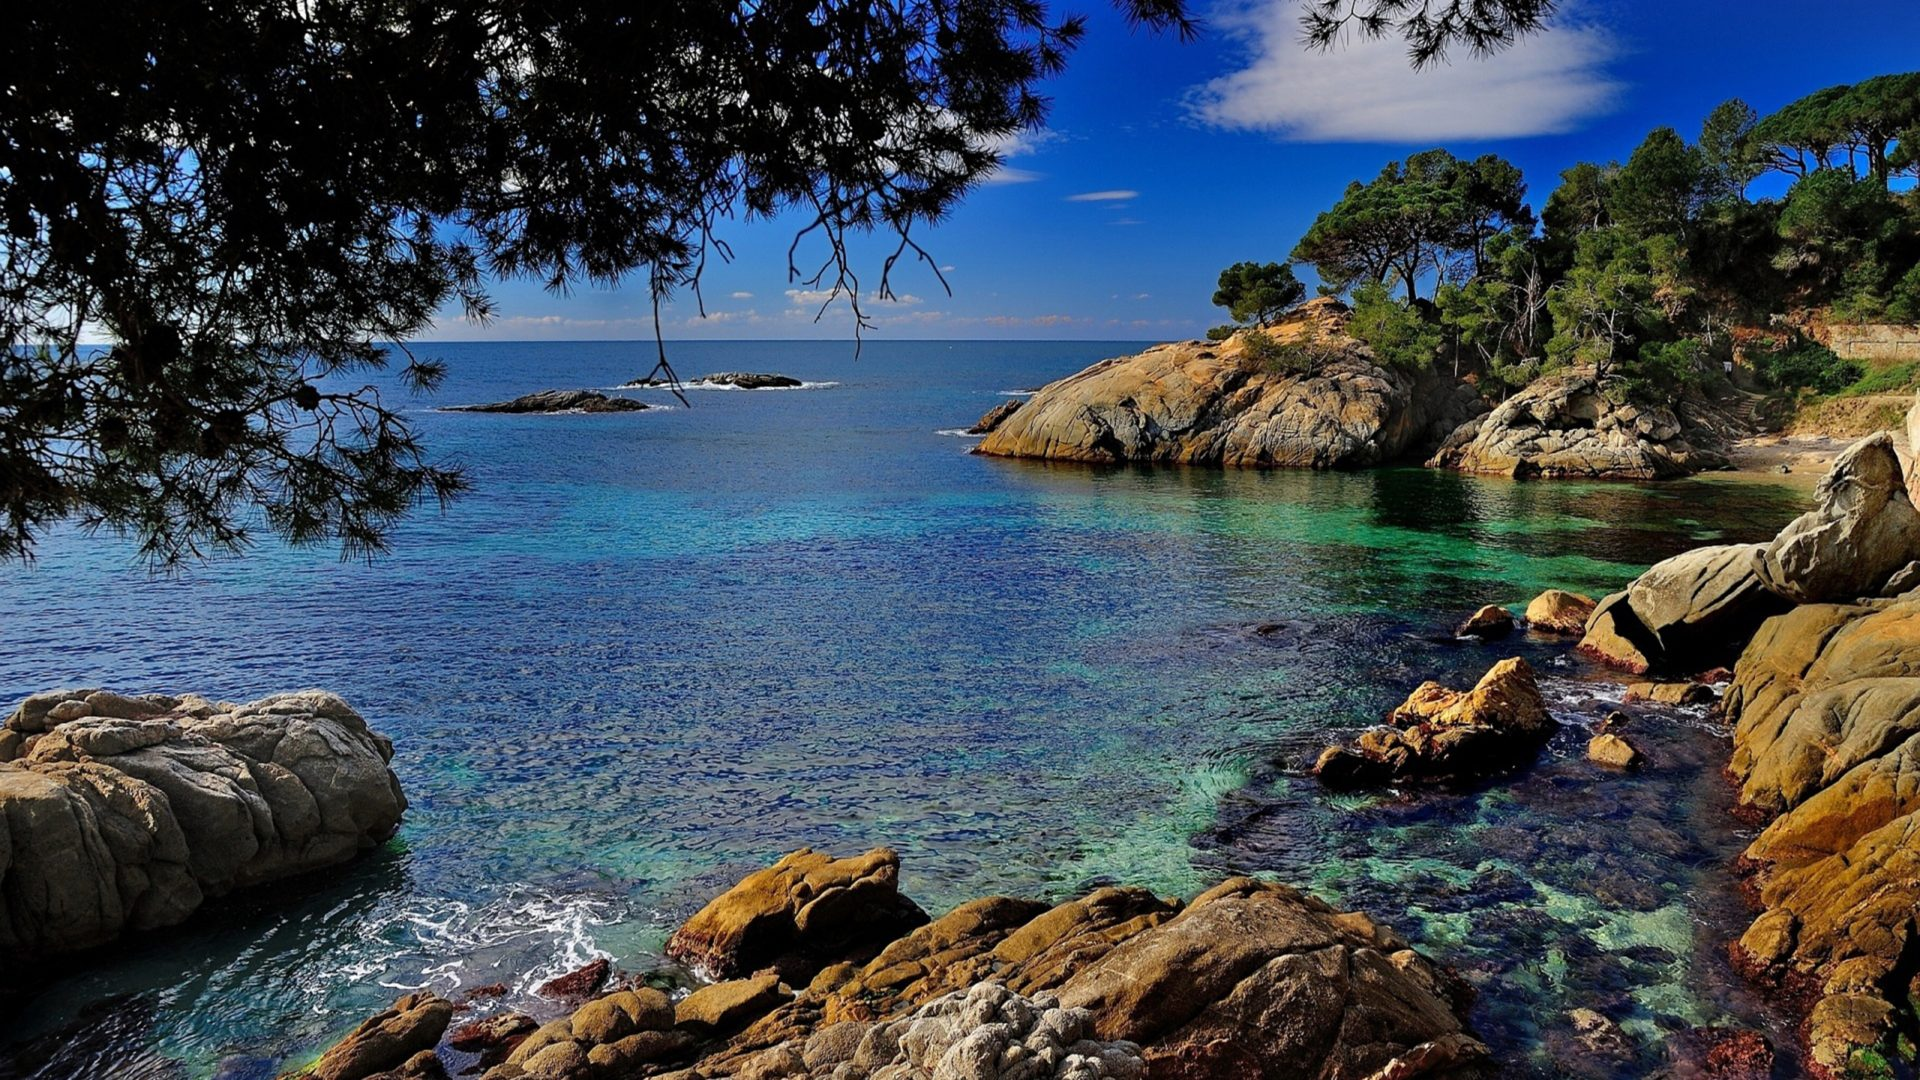 Iphone 5 Panorama Wallpaper Costa Brava Coast Spain 2560x1600 Wallpapers13 Com